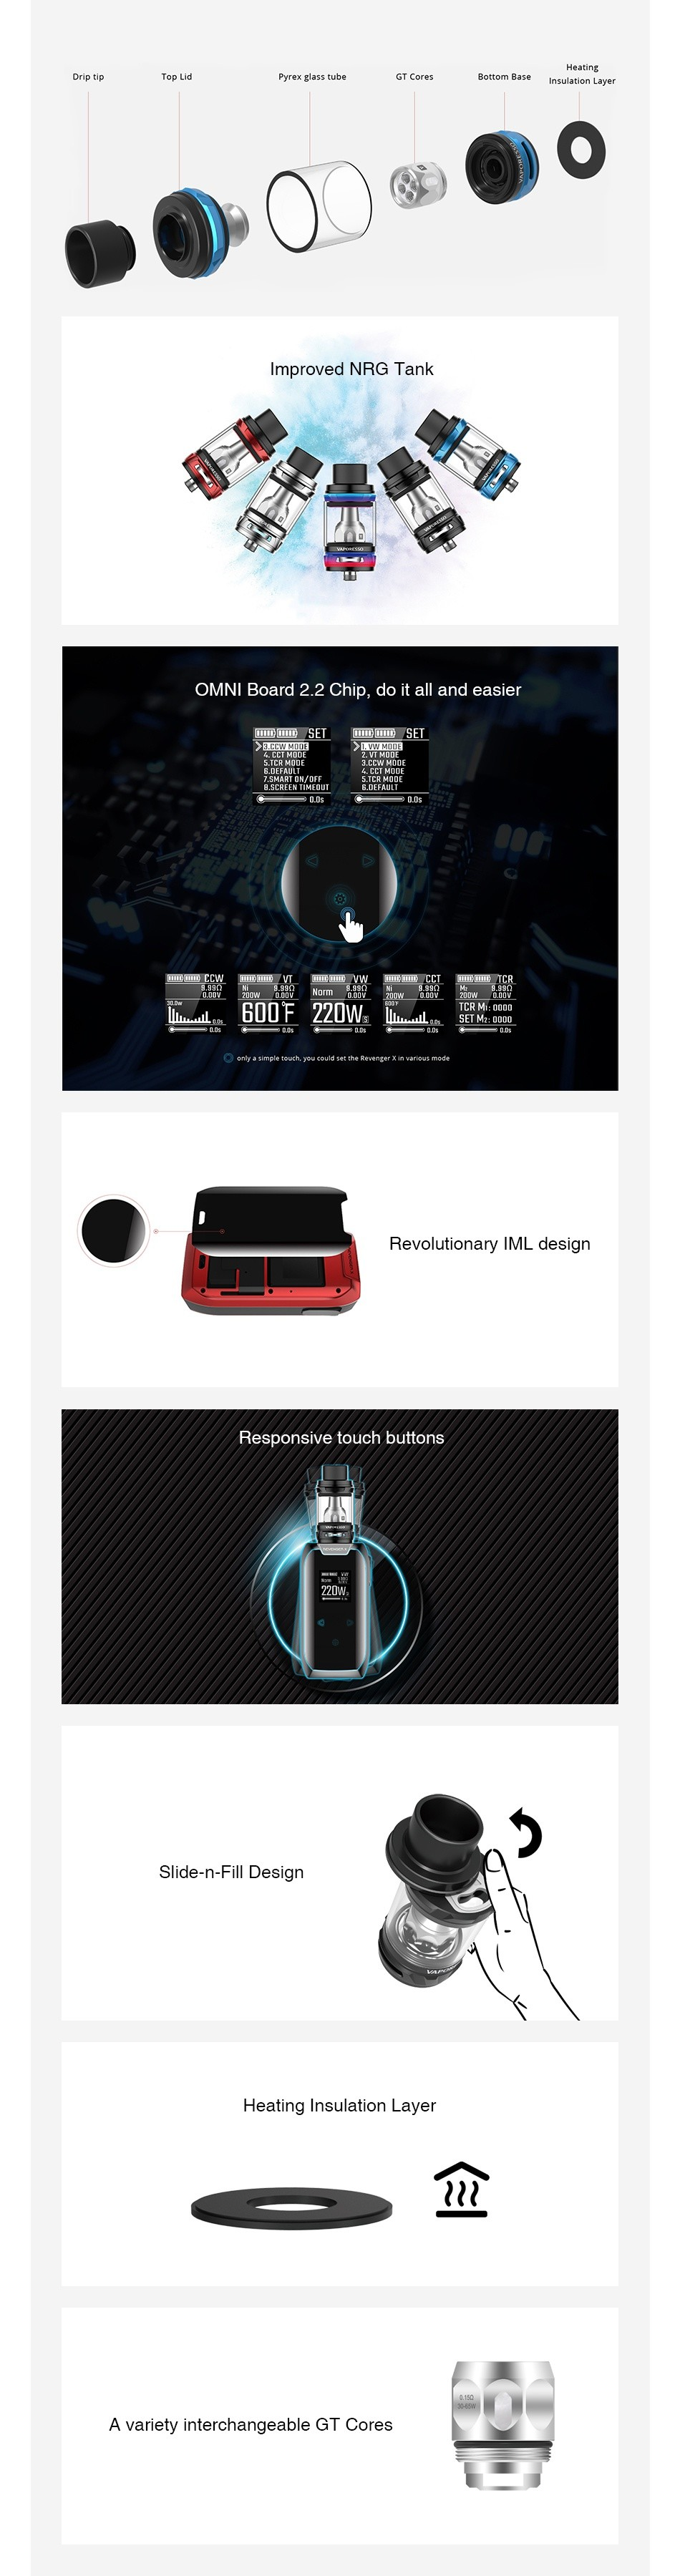 Vaporesso Revenger X 220W with NRG TC Kit VAPORESSO VAPORESSO EVEnT R REVENE   WW Norm Norm Norm Norm 220W4 220W 220W2 220W2 Green Red Rainbow Black Blue